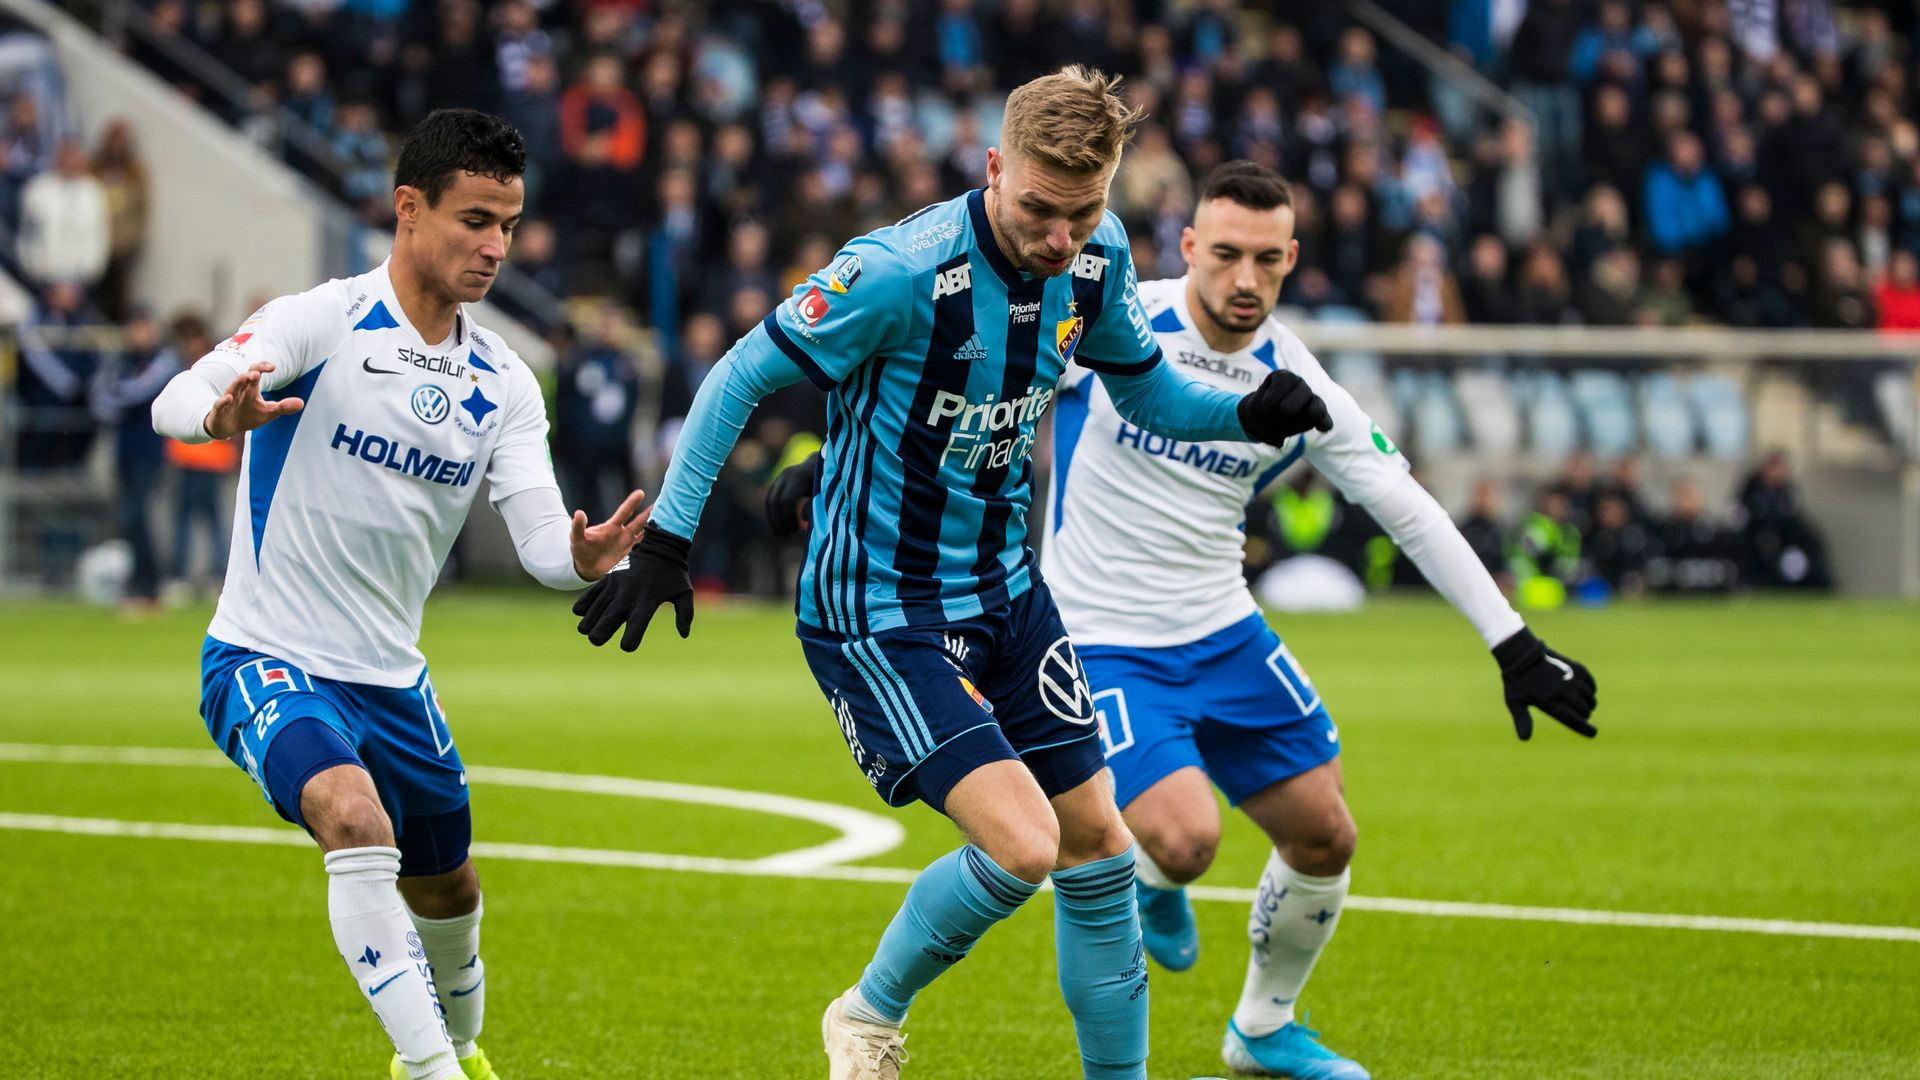 Swedish clubs tell government: Let us play